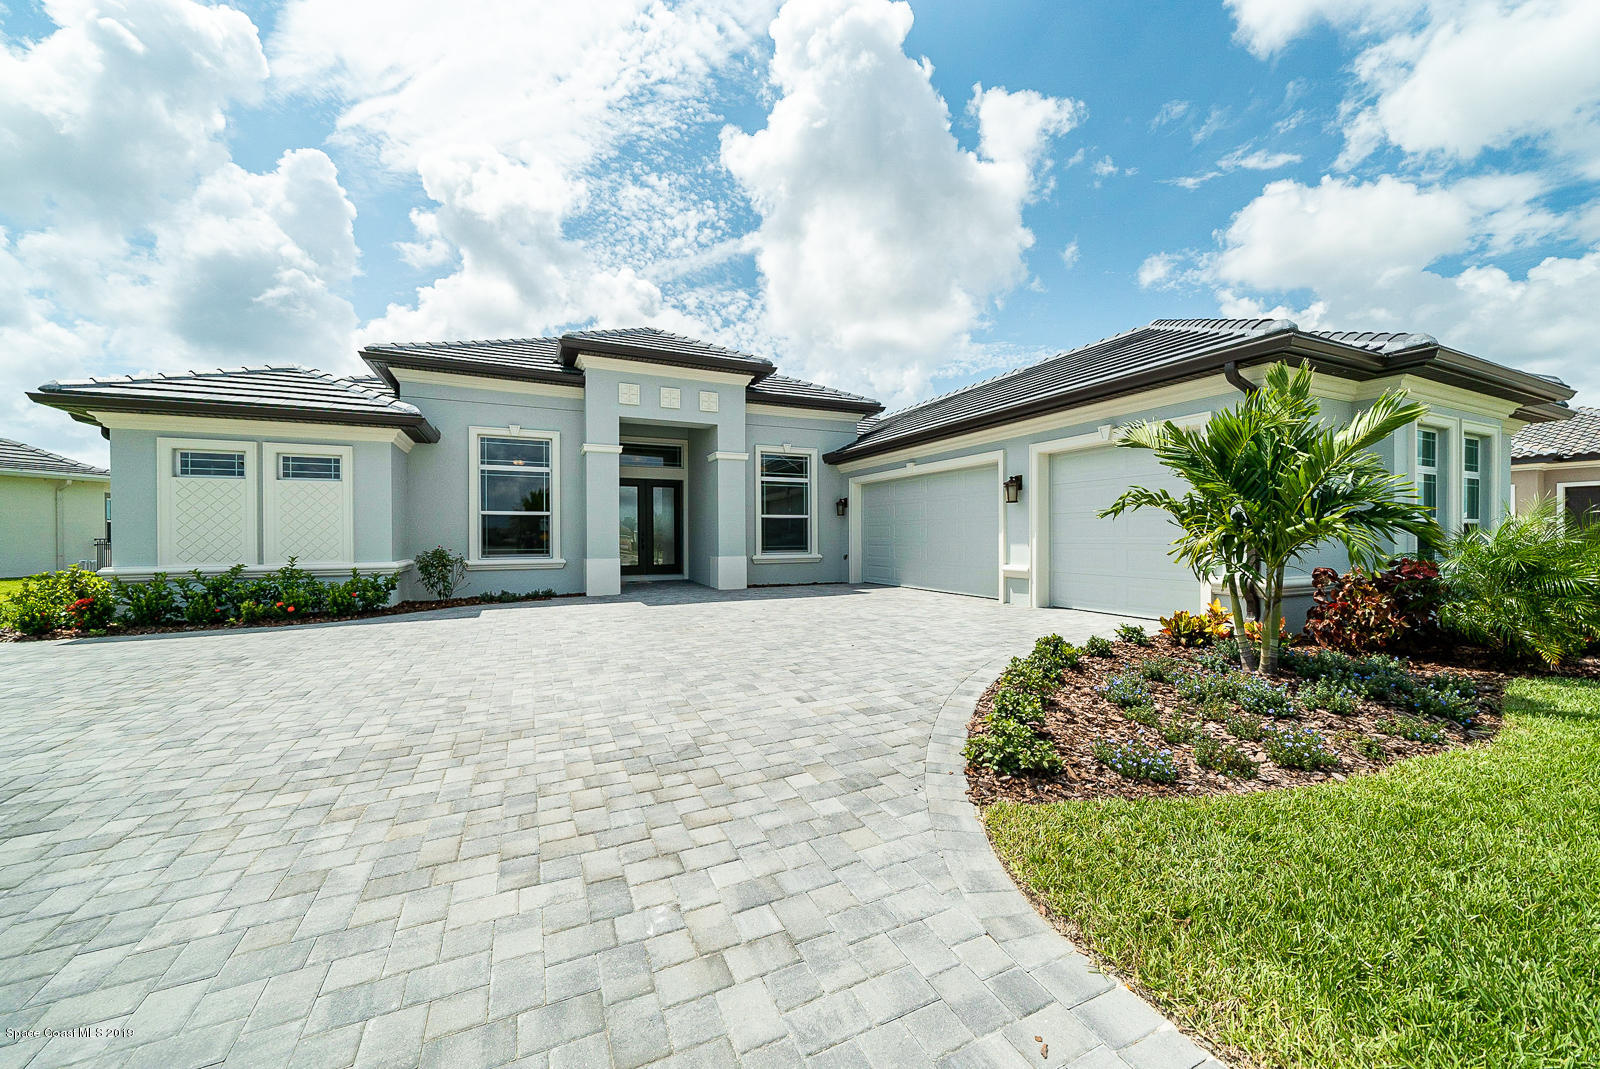 Single Family Homes for Sale at 8690 Serrano Melbourne, Florida 32940 United States